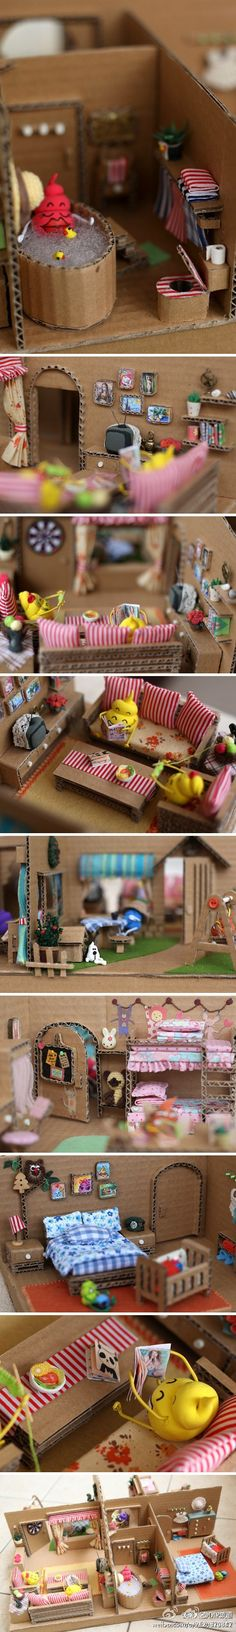 cute cardboard dollhouse!